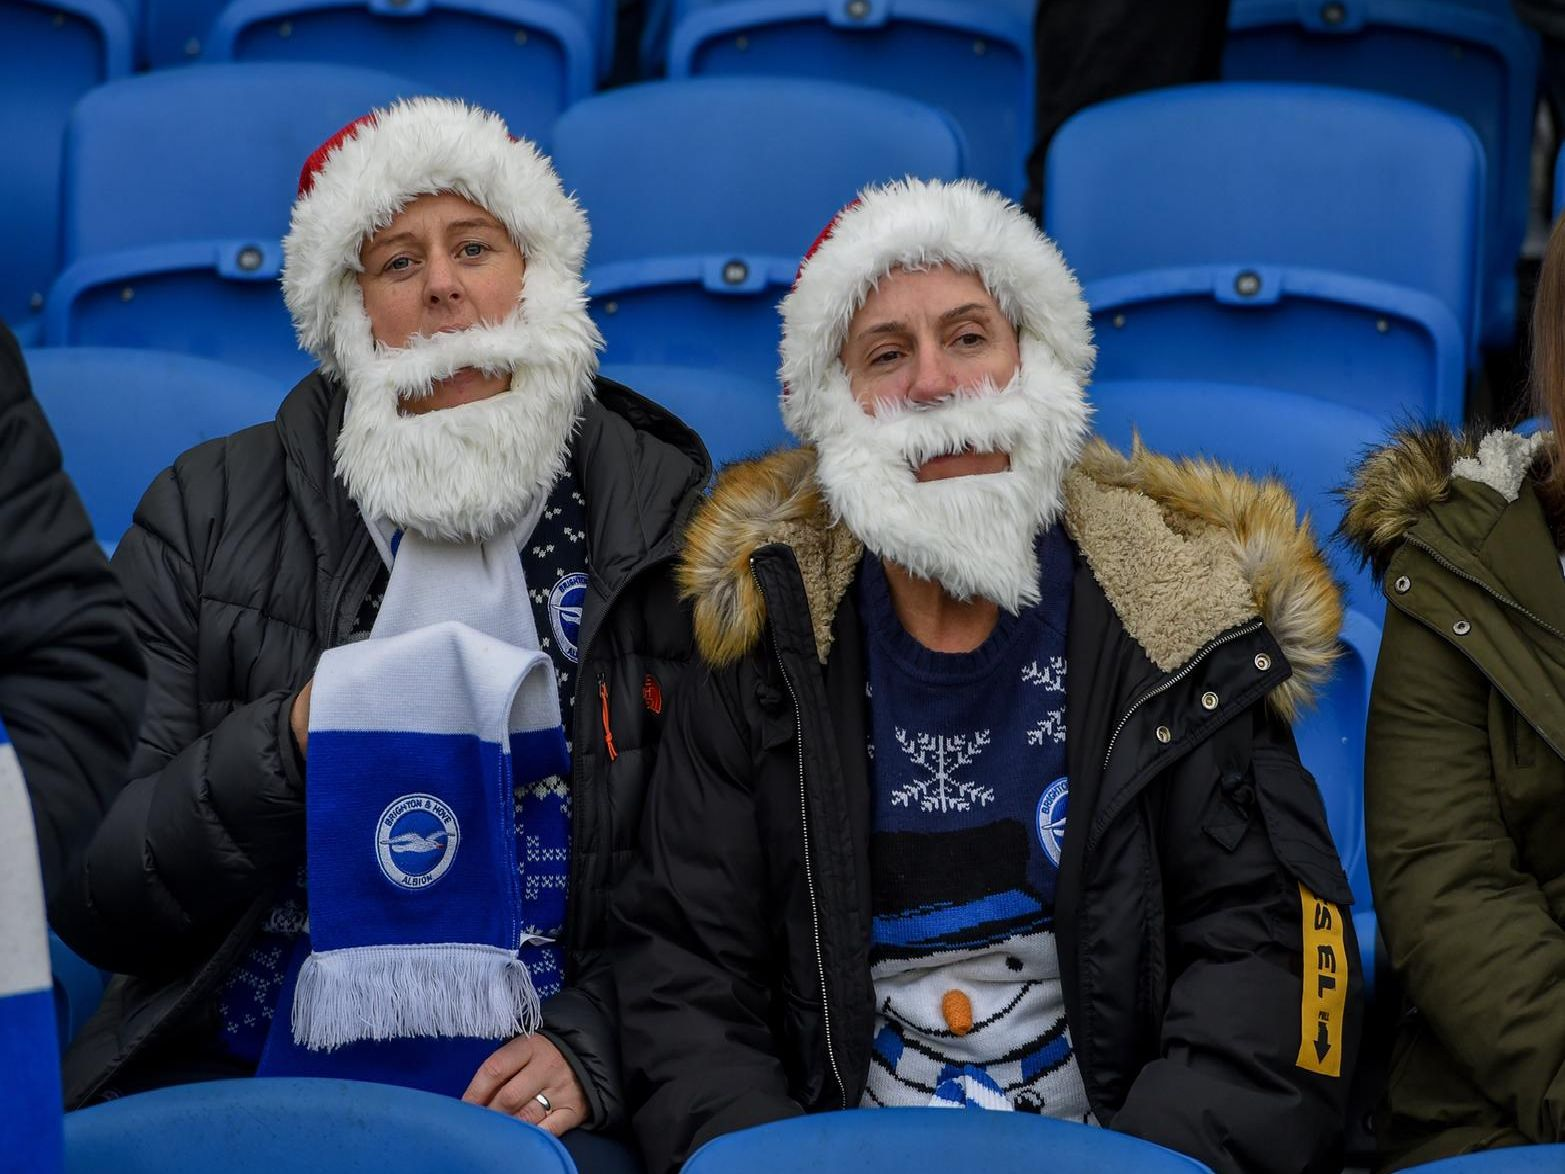 Albion fans dress as Santa at the Amex